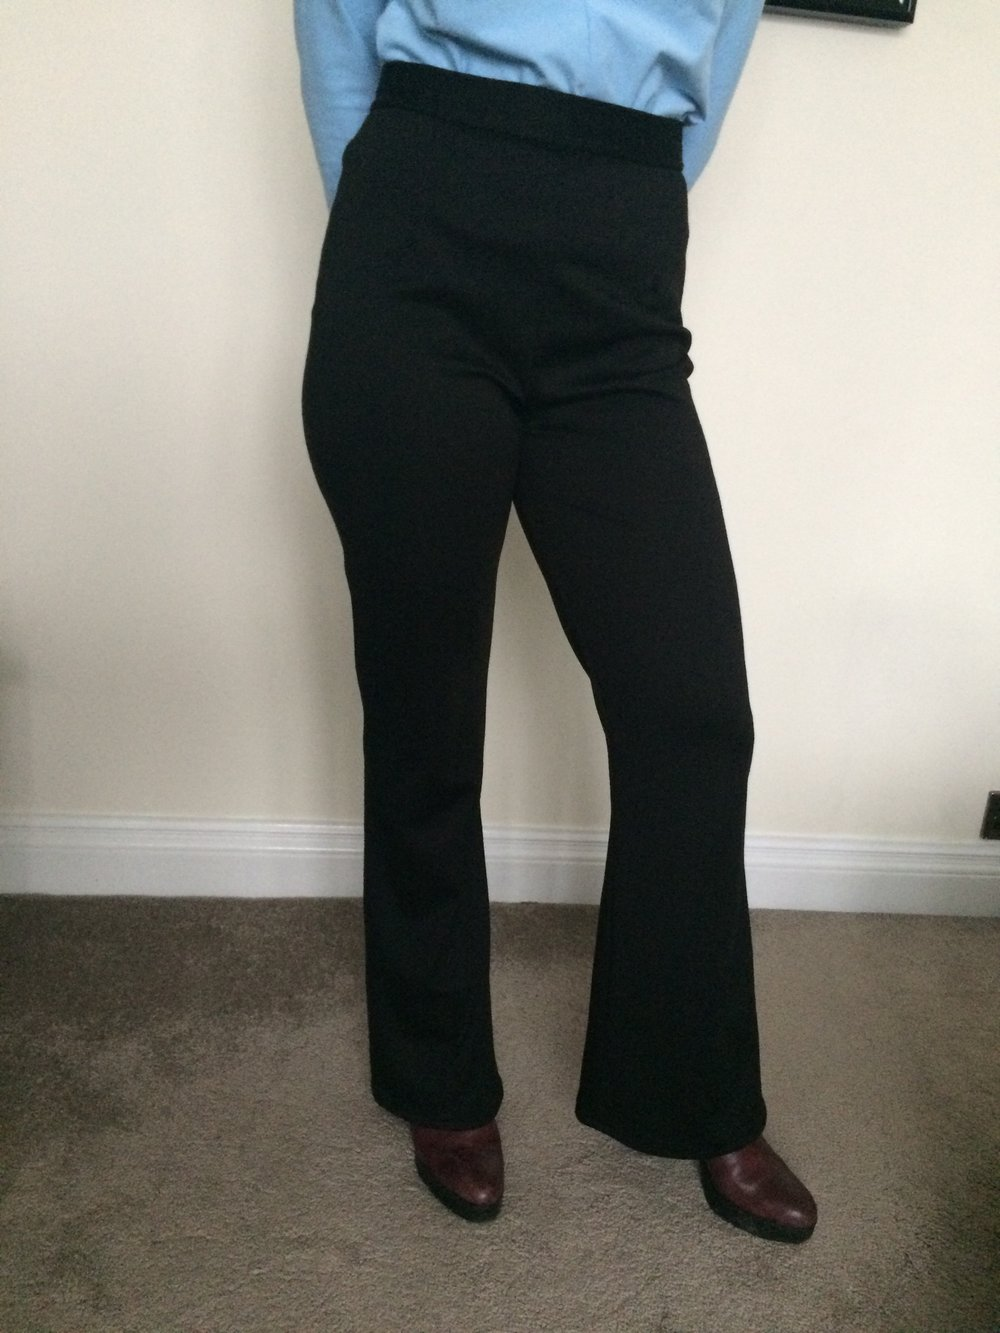 Mimi G for Simplicity 1283 flared trousers